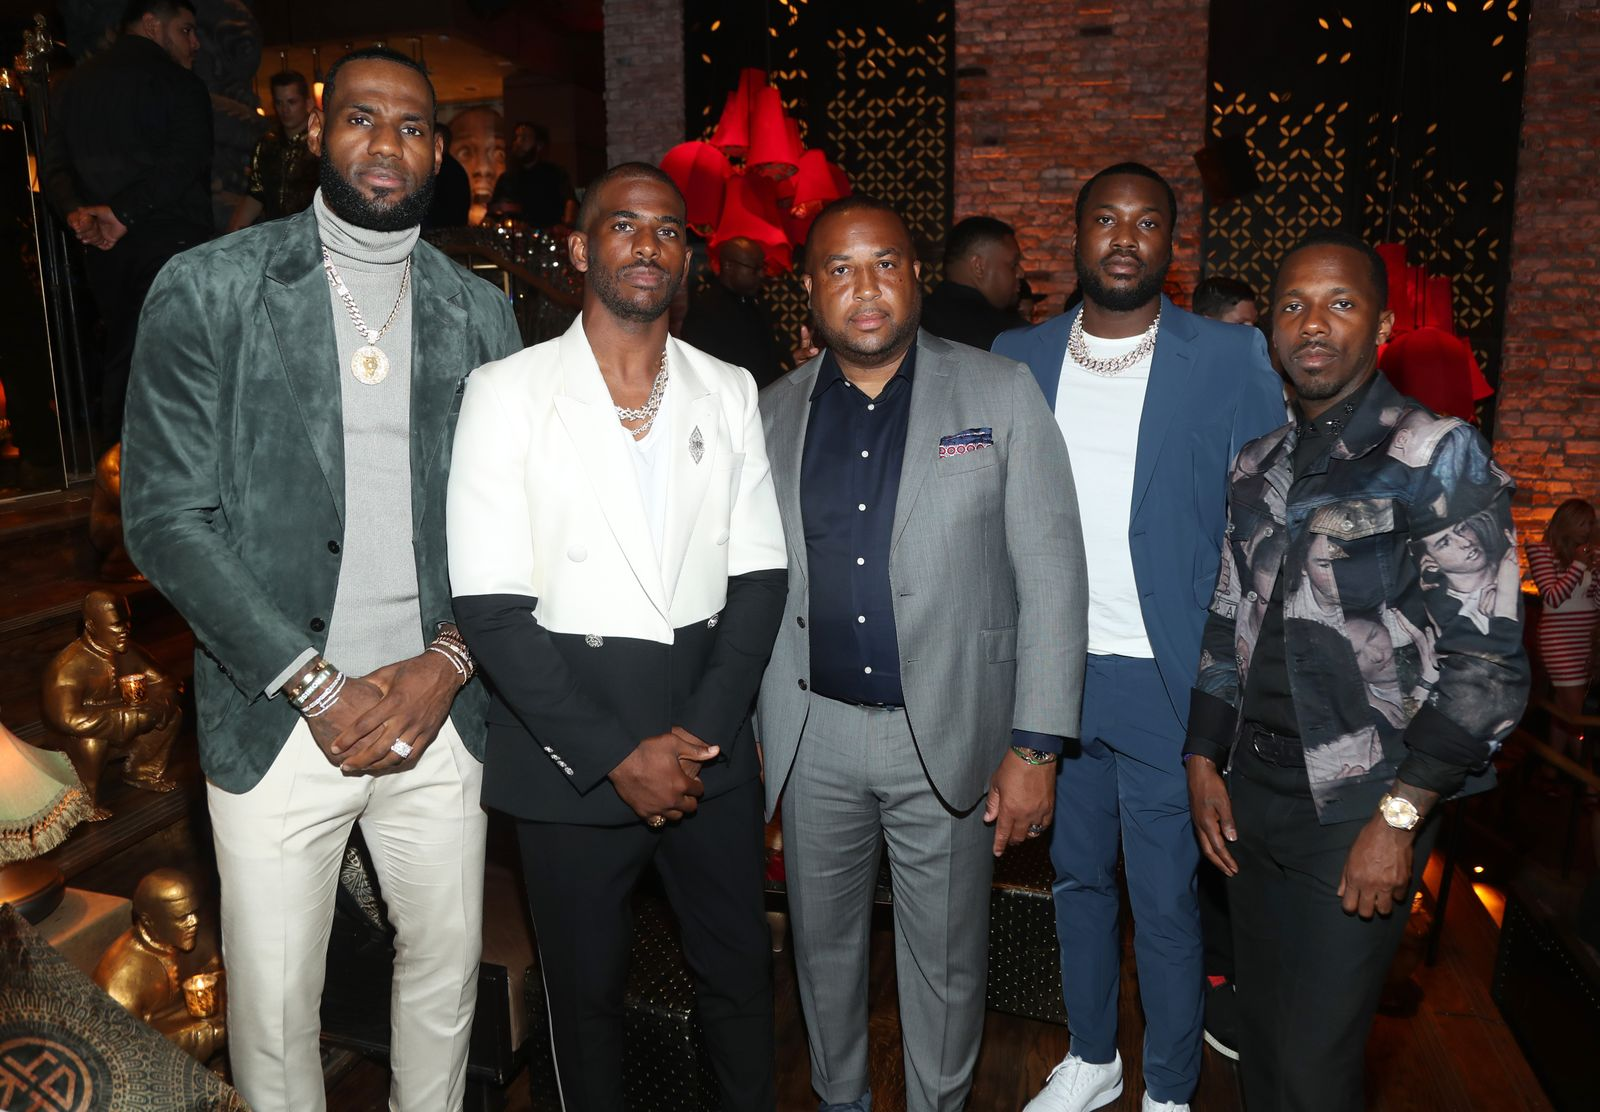 Kevin Hart Celebrates his 40th Birthday at TAO in Los Angeles with LOUIS XIII Cognac and Rémy Martin